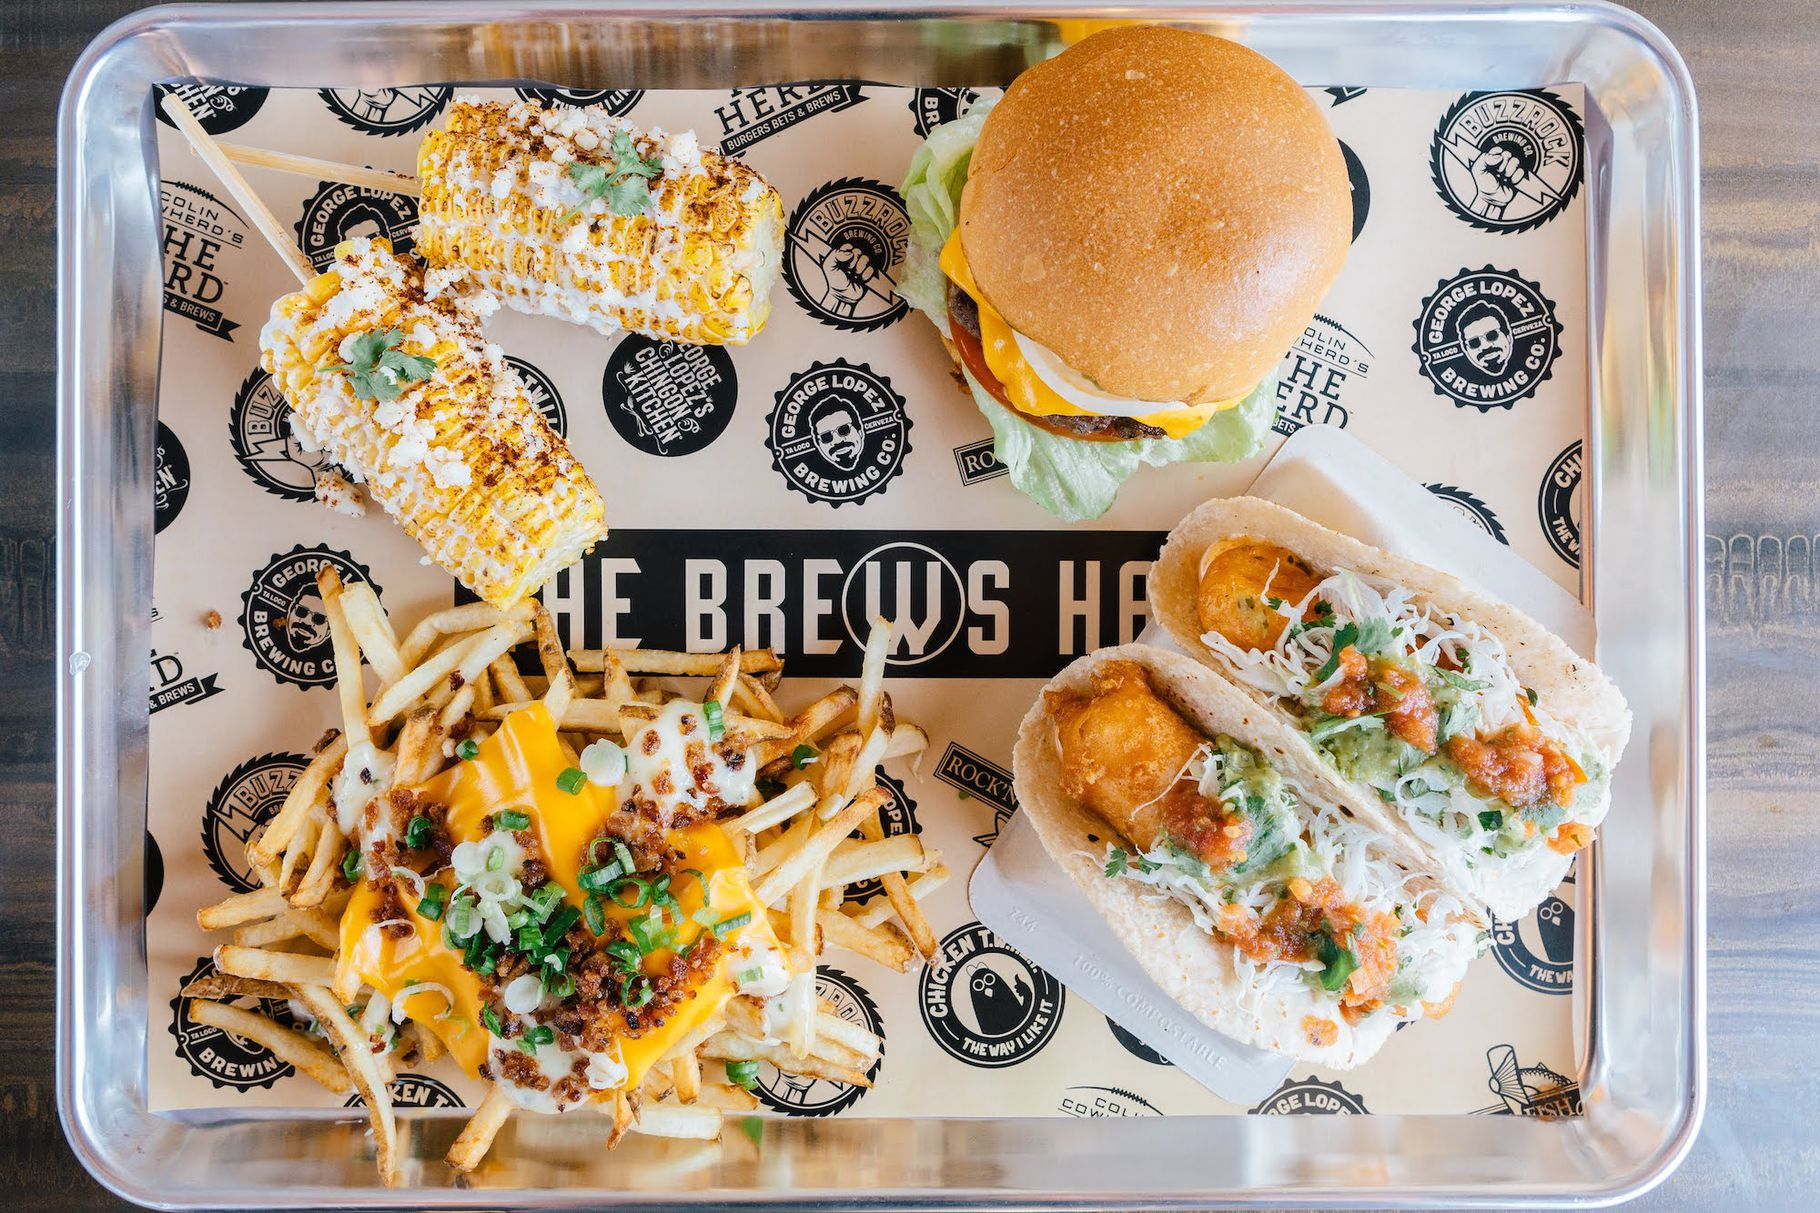 A variety of dishes, including a burger, elote, fries, and fish tacos, on a tray.